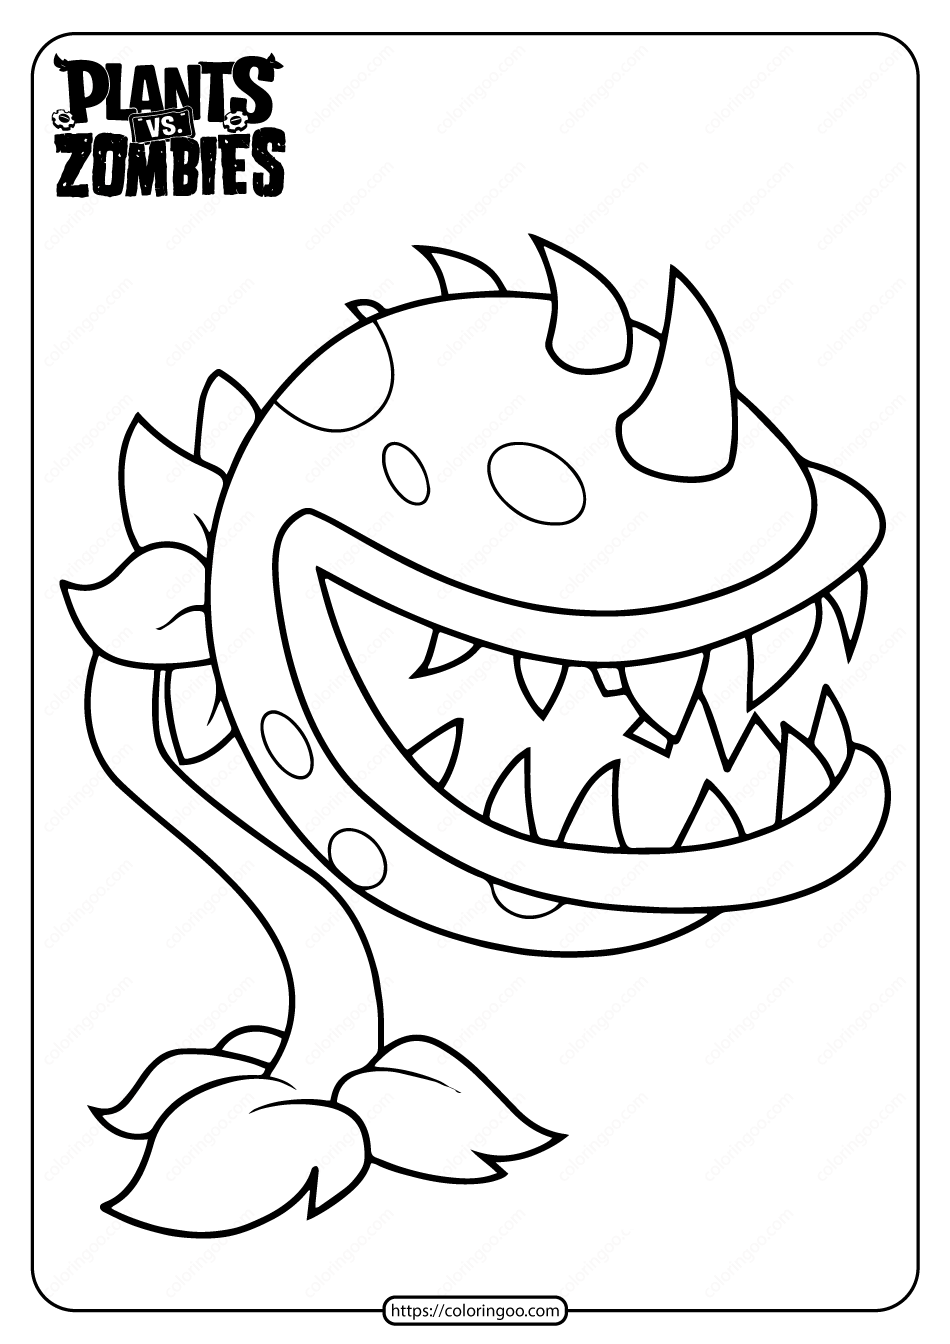 plants vs zombies coloring pictures zombie coloring pages free download on clipartmag coloring vs zombies pictures plants